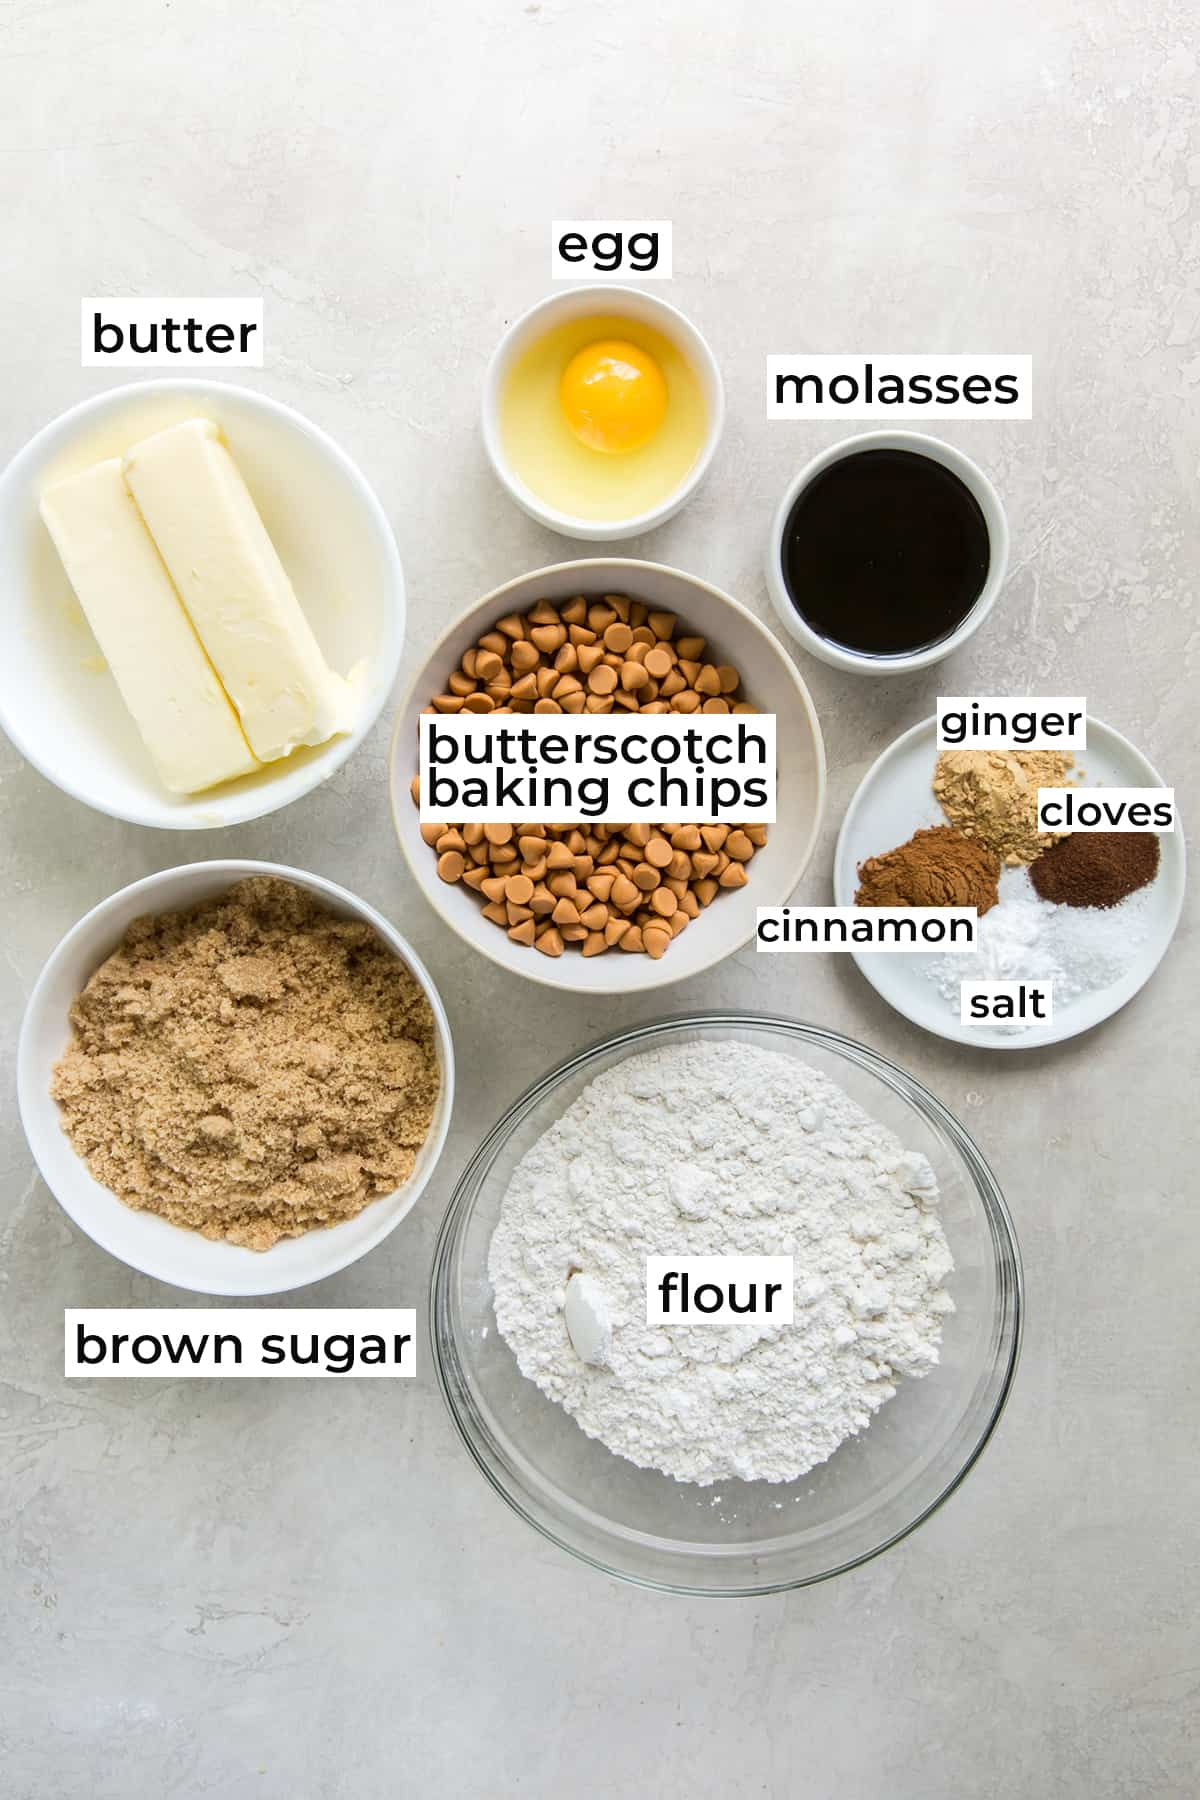 All of the ingredients needed to make Butterscotch Gingerbread Cookies.